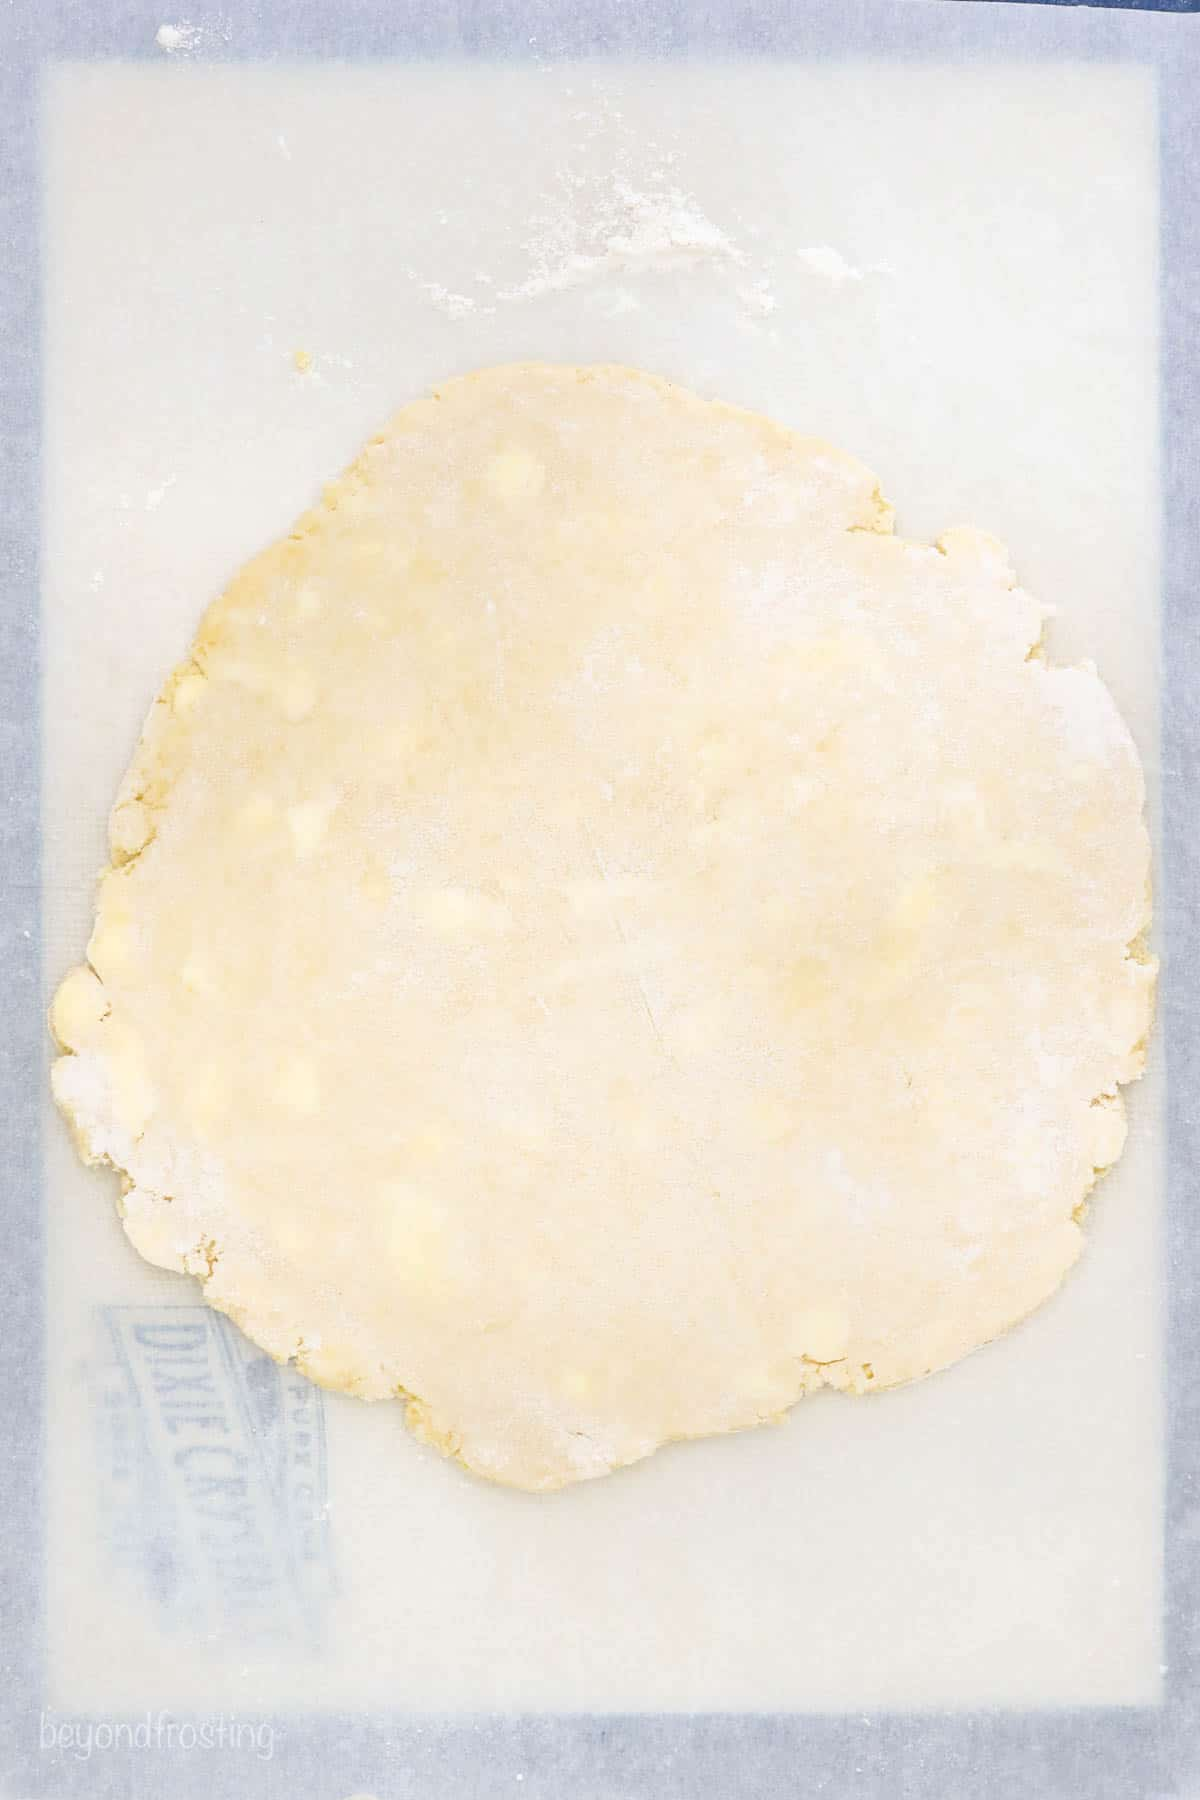 Rolled out pie dough on a piece of floured parchment paper with a silicone mat beneath it